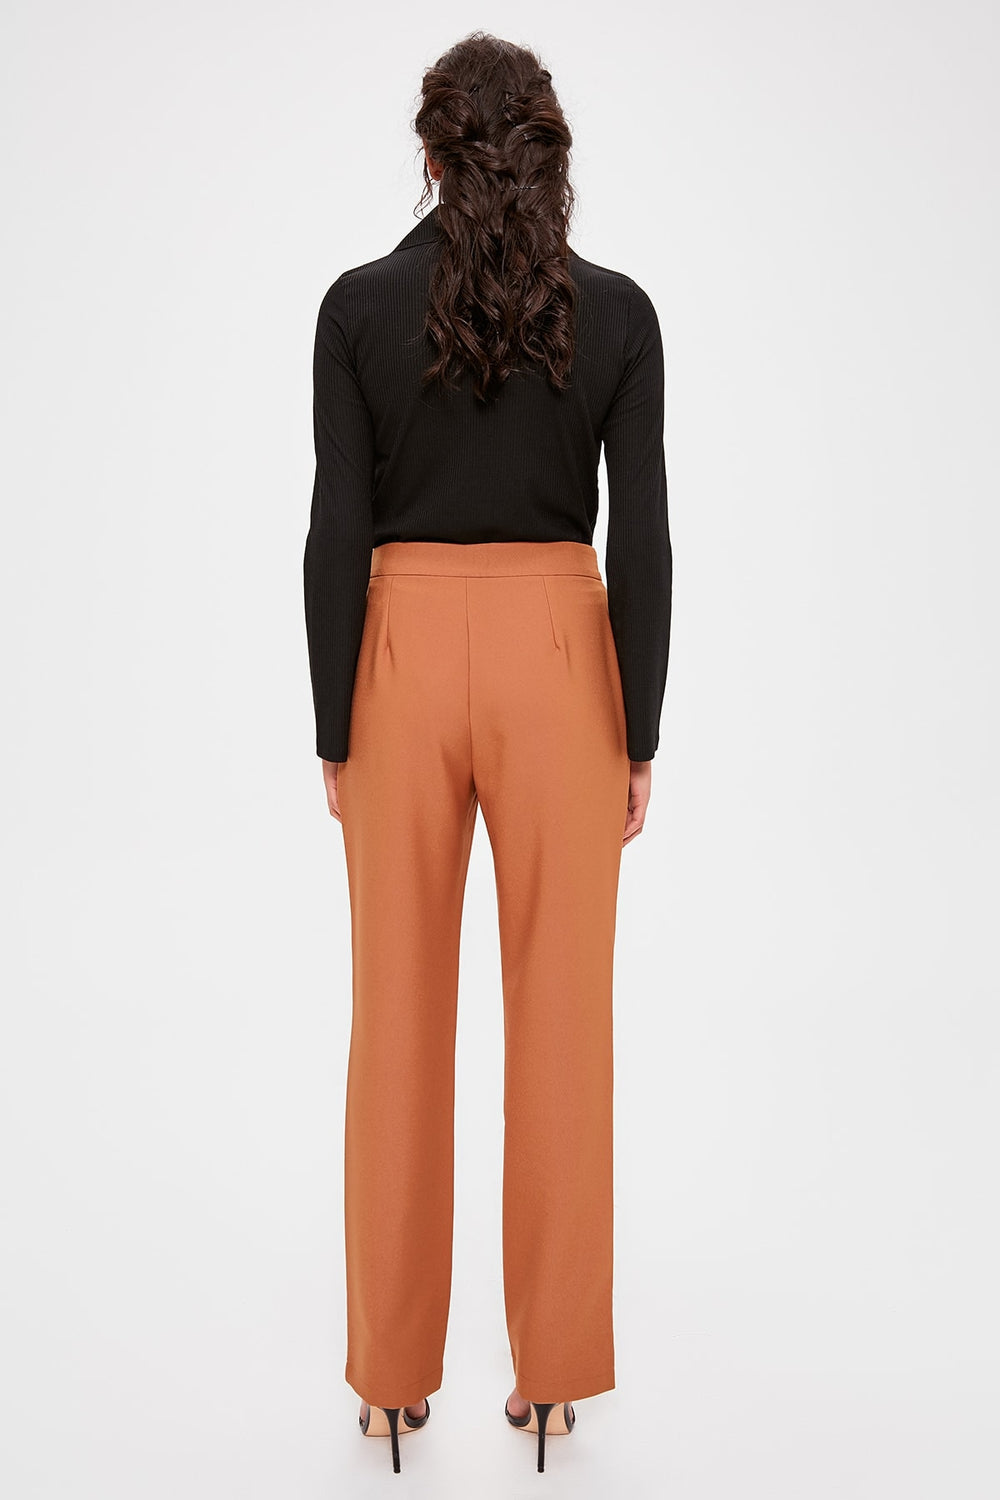 Miss Zut Miss Zut Cinnamon Basic Pants Miss Zut &CO